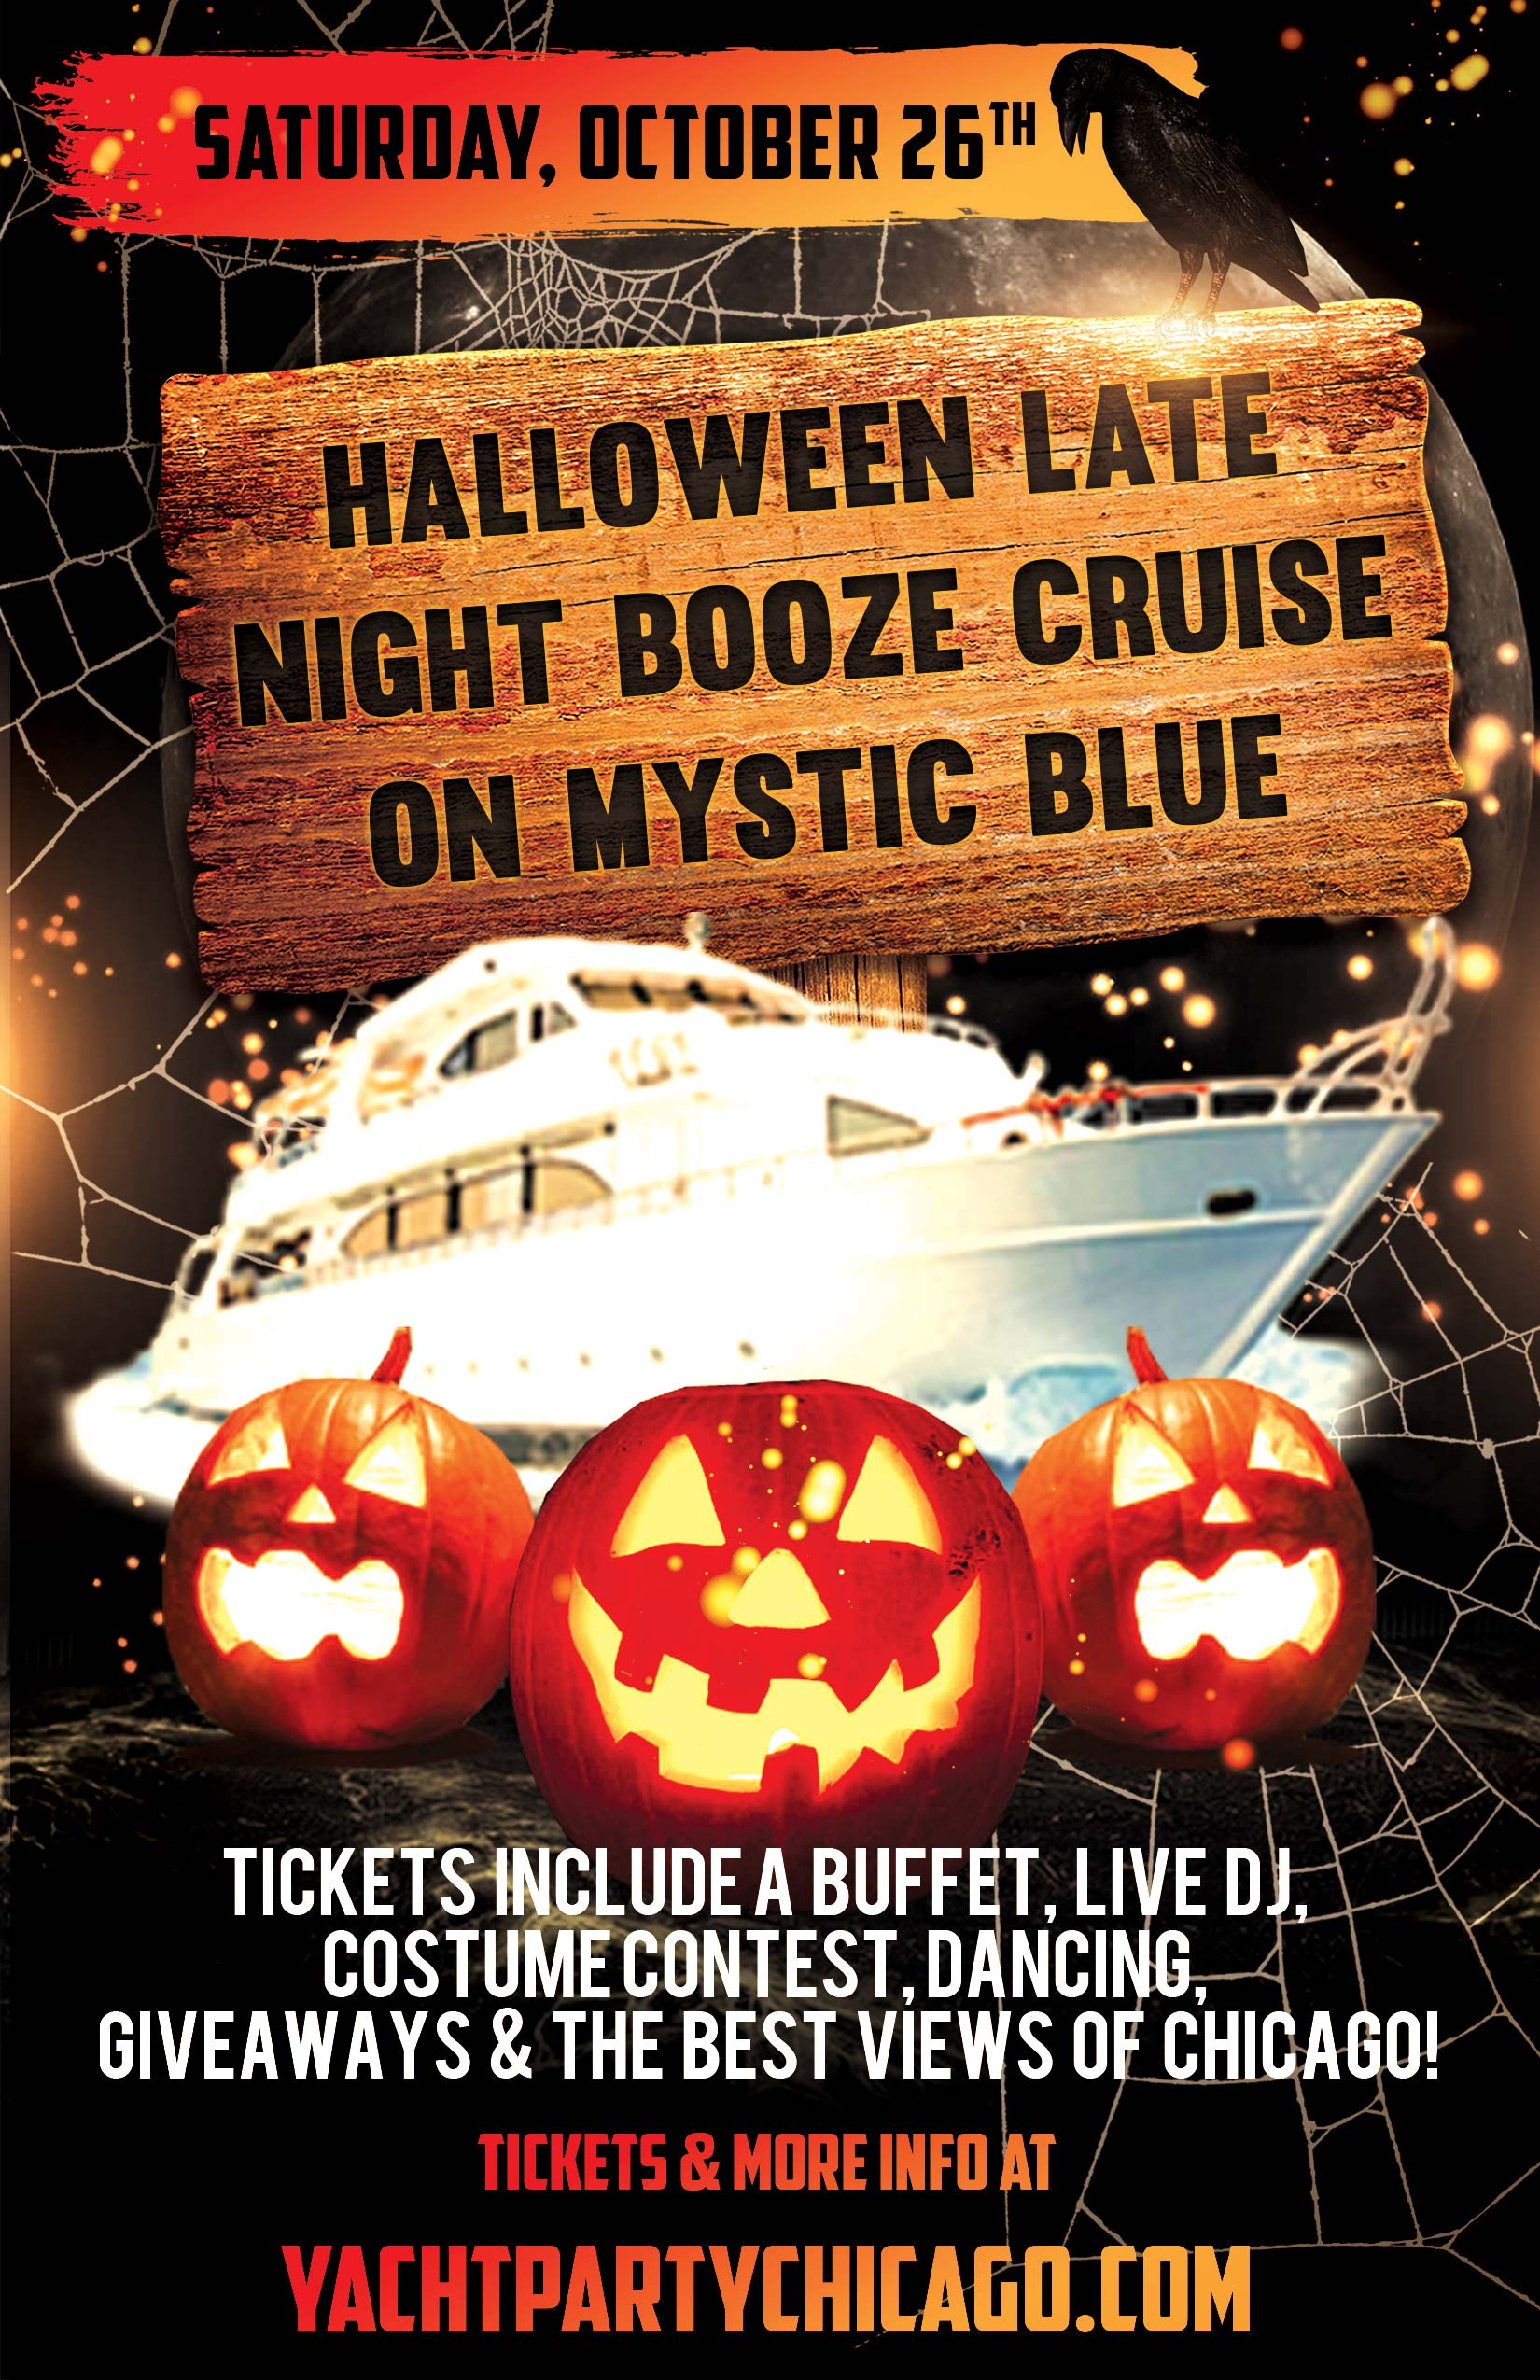 Tickets include a Buffet, Live DJ, Dancing, Giveaways,  a Costume Contest, and the best views of Chicago!